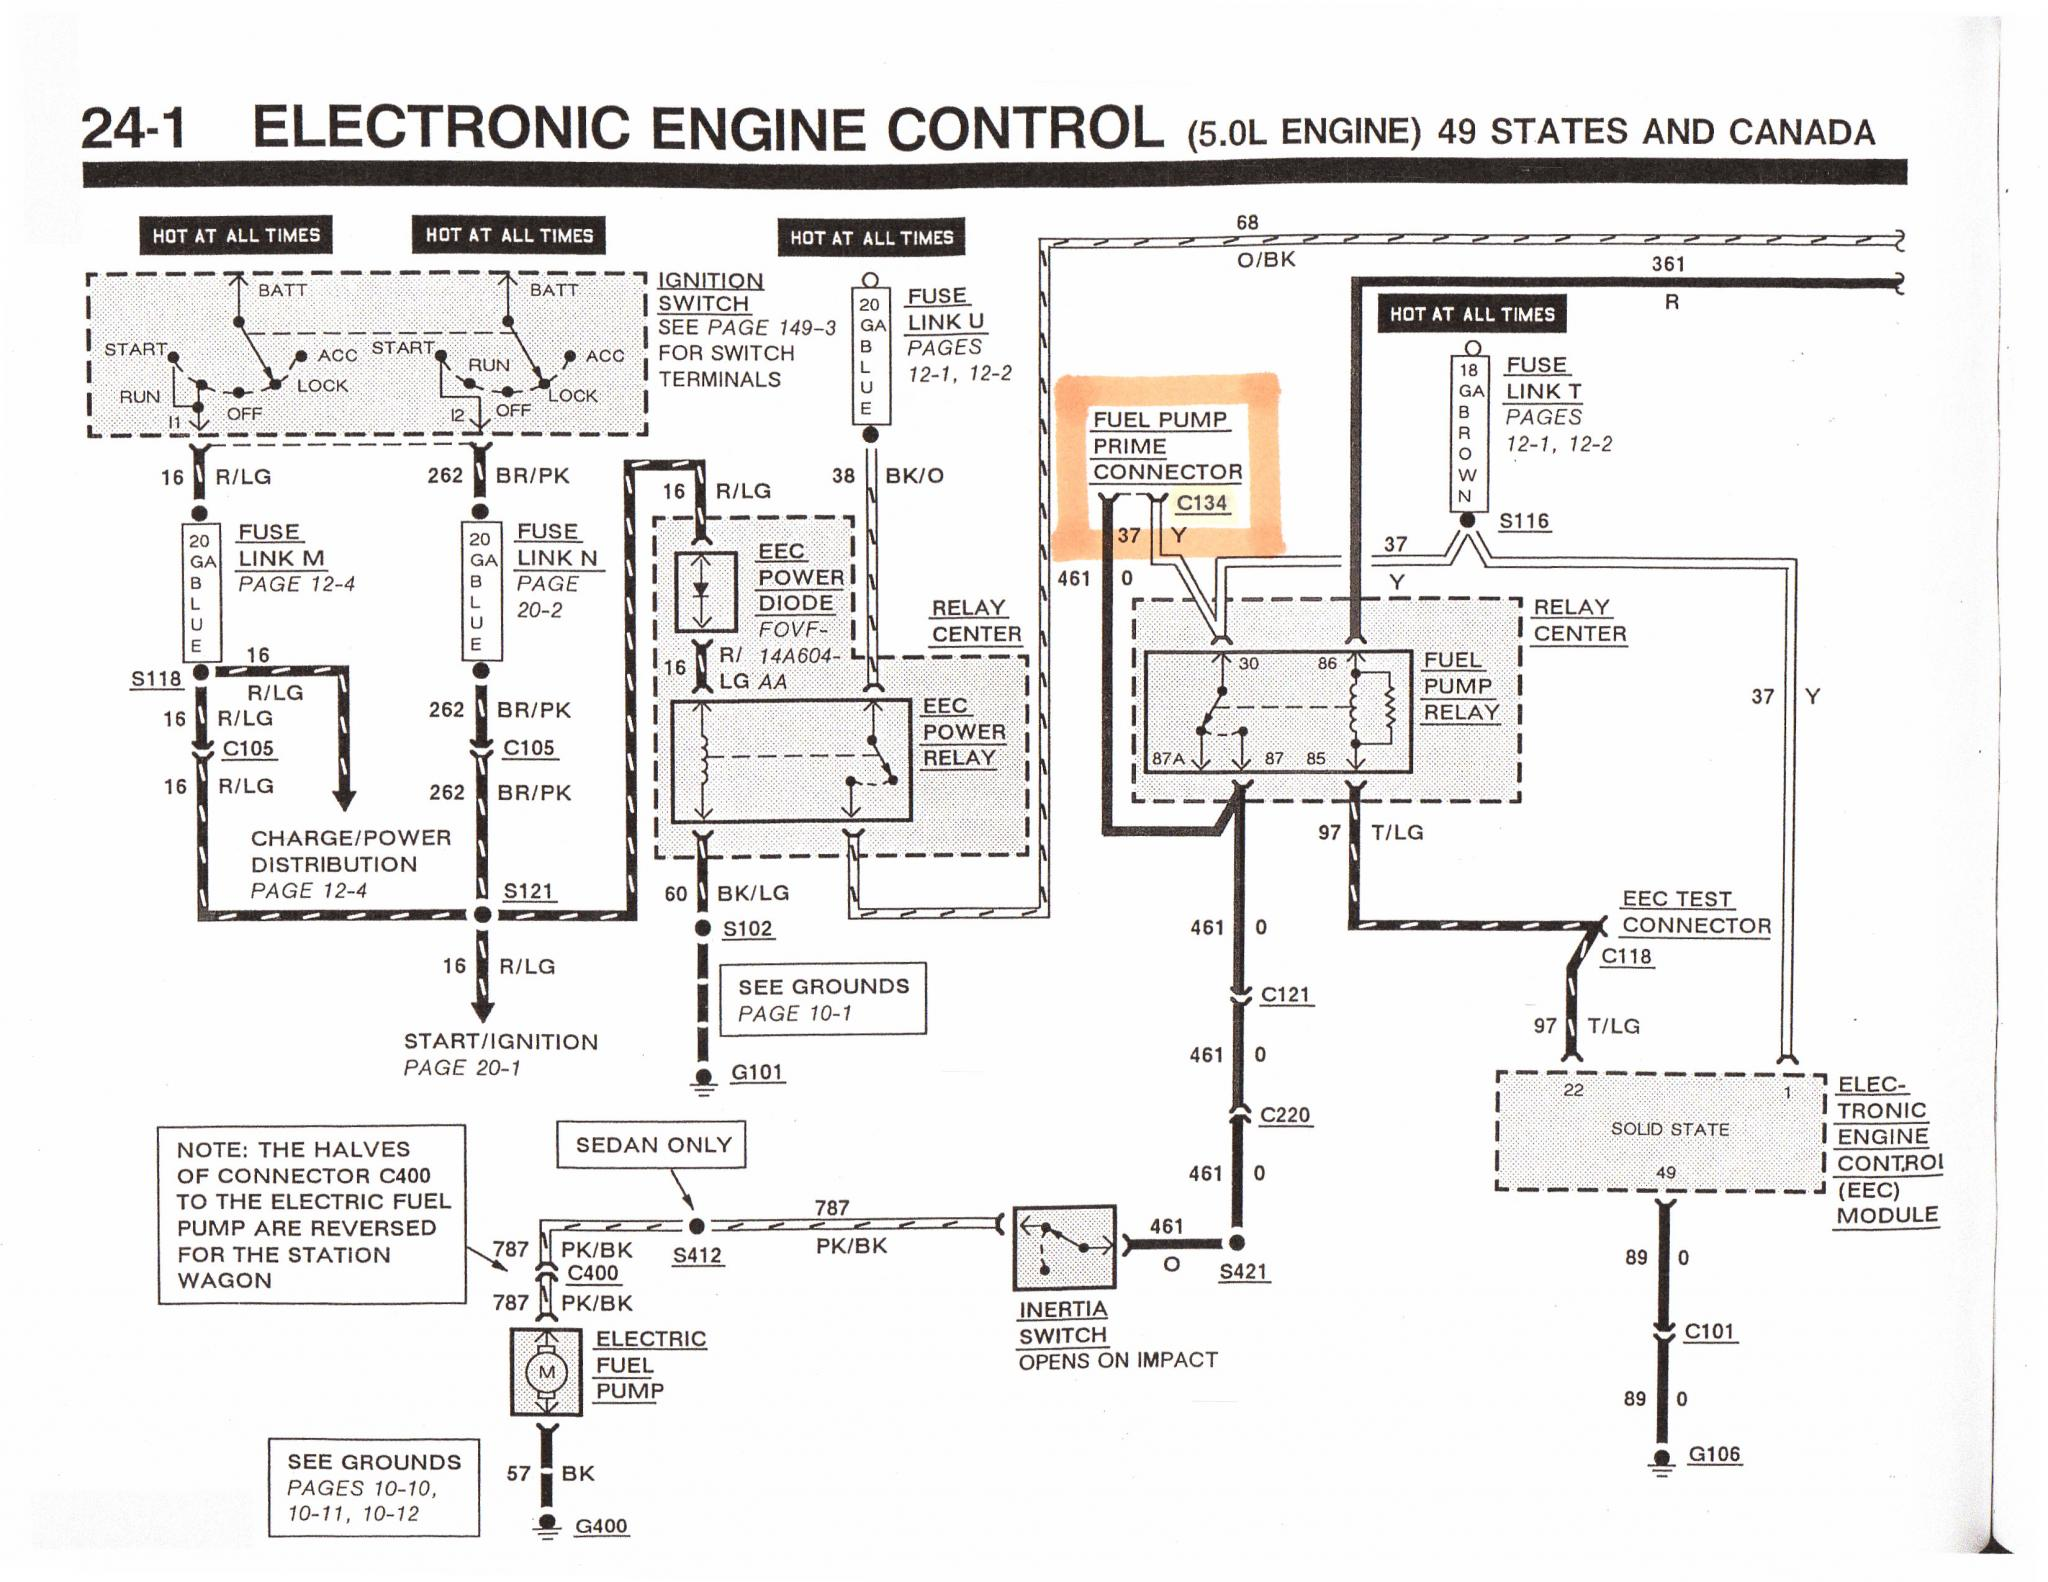 merkur xrti fuel pump wiring diagram route schematic wiring wiring diagram evtm schematics and wiring diagrams fuel pump prime evtm jpg wiring diagram evtm merkur xr4ti fuel pump wiring diagram